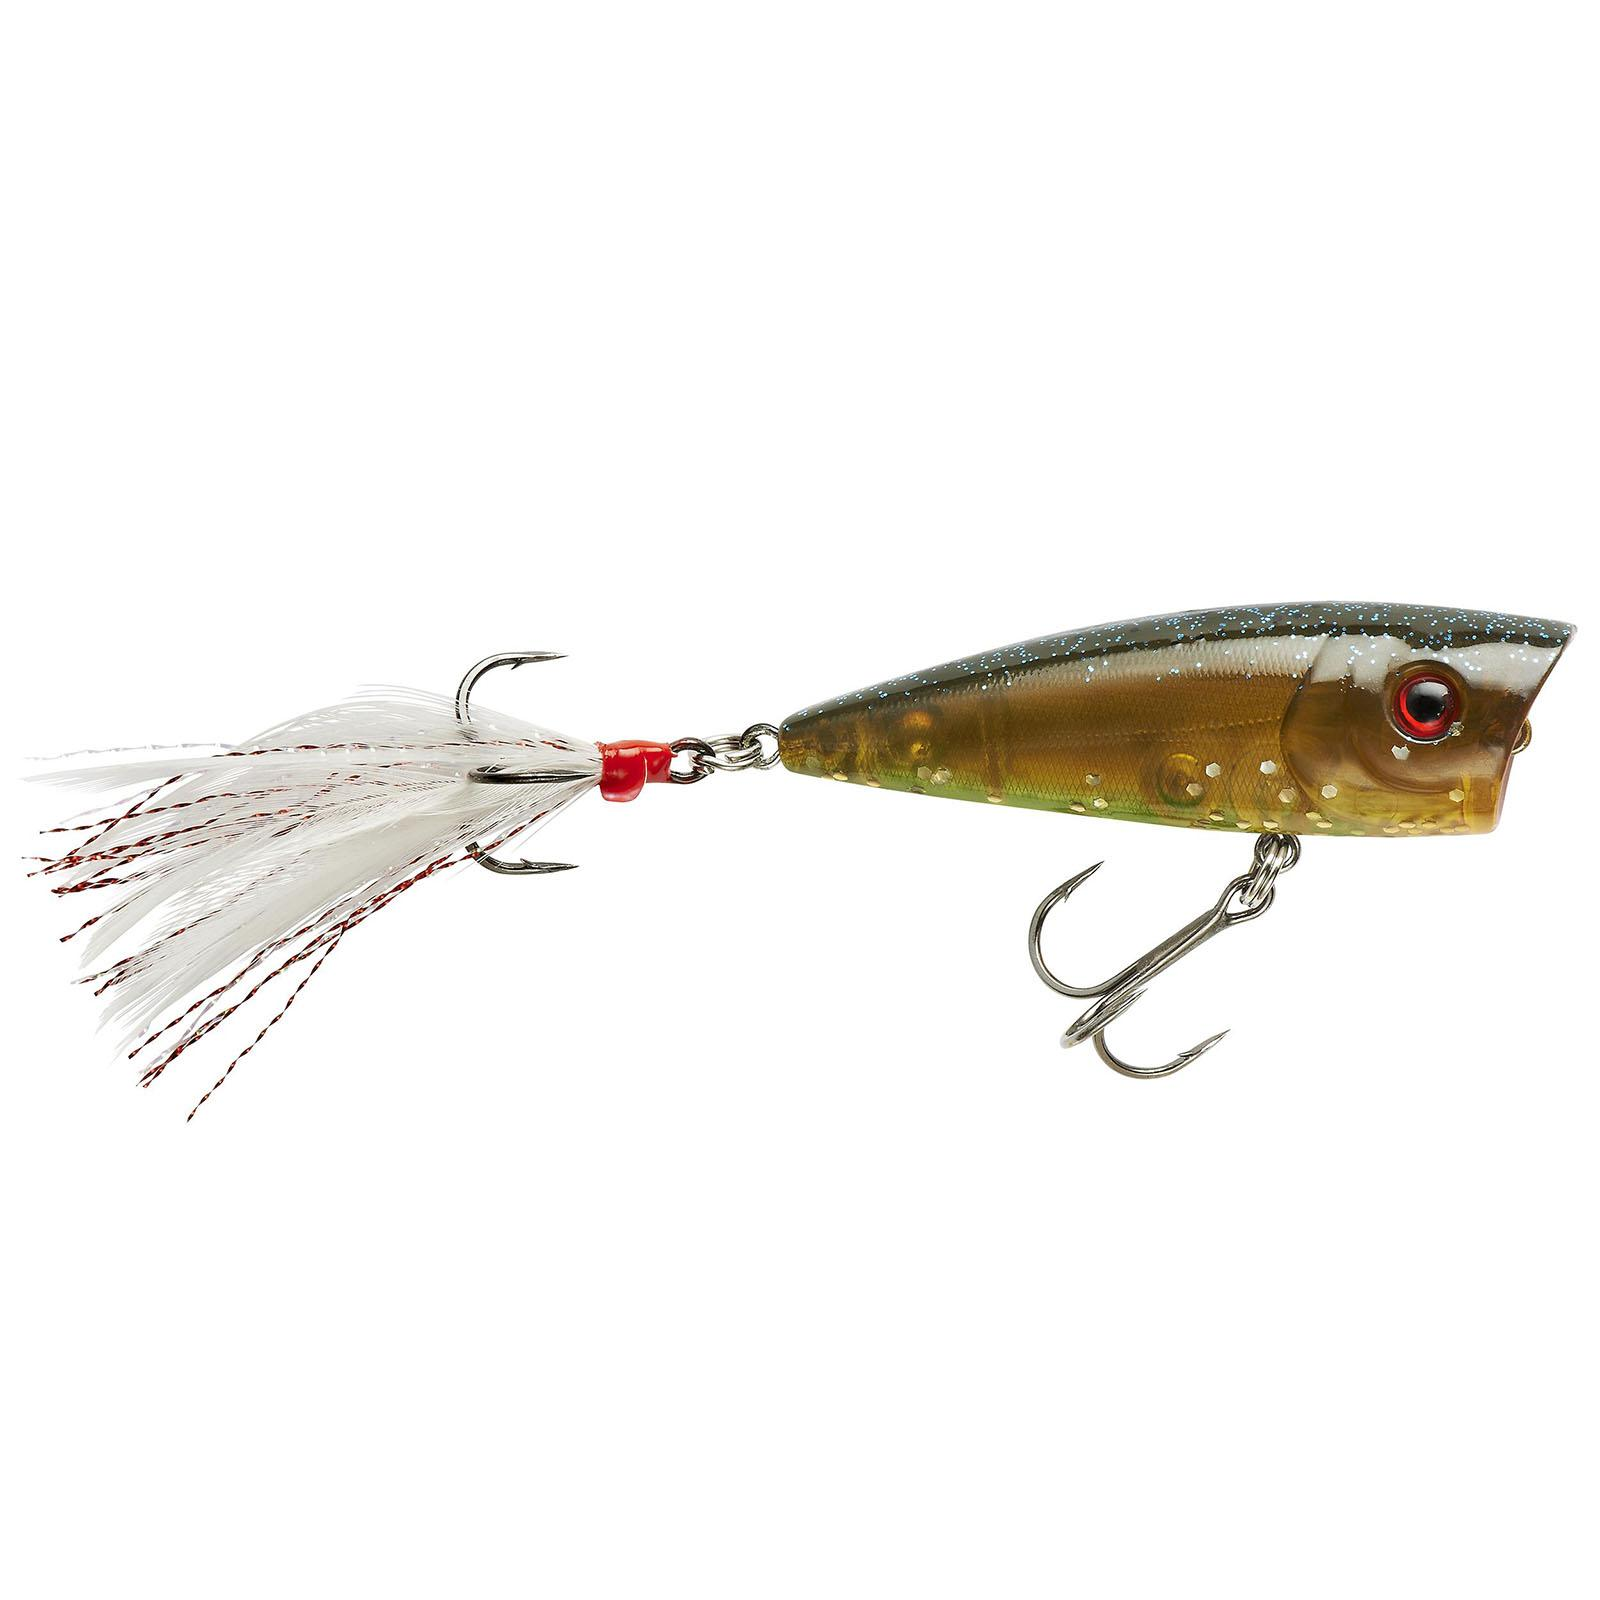 Booyah Baits Boss Pop Color Summer Gill Size 3 in